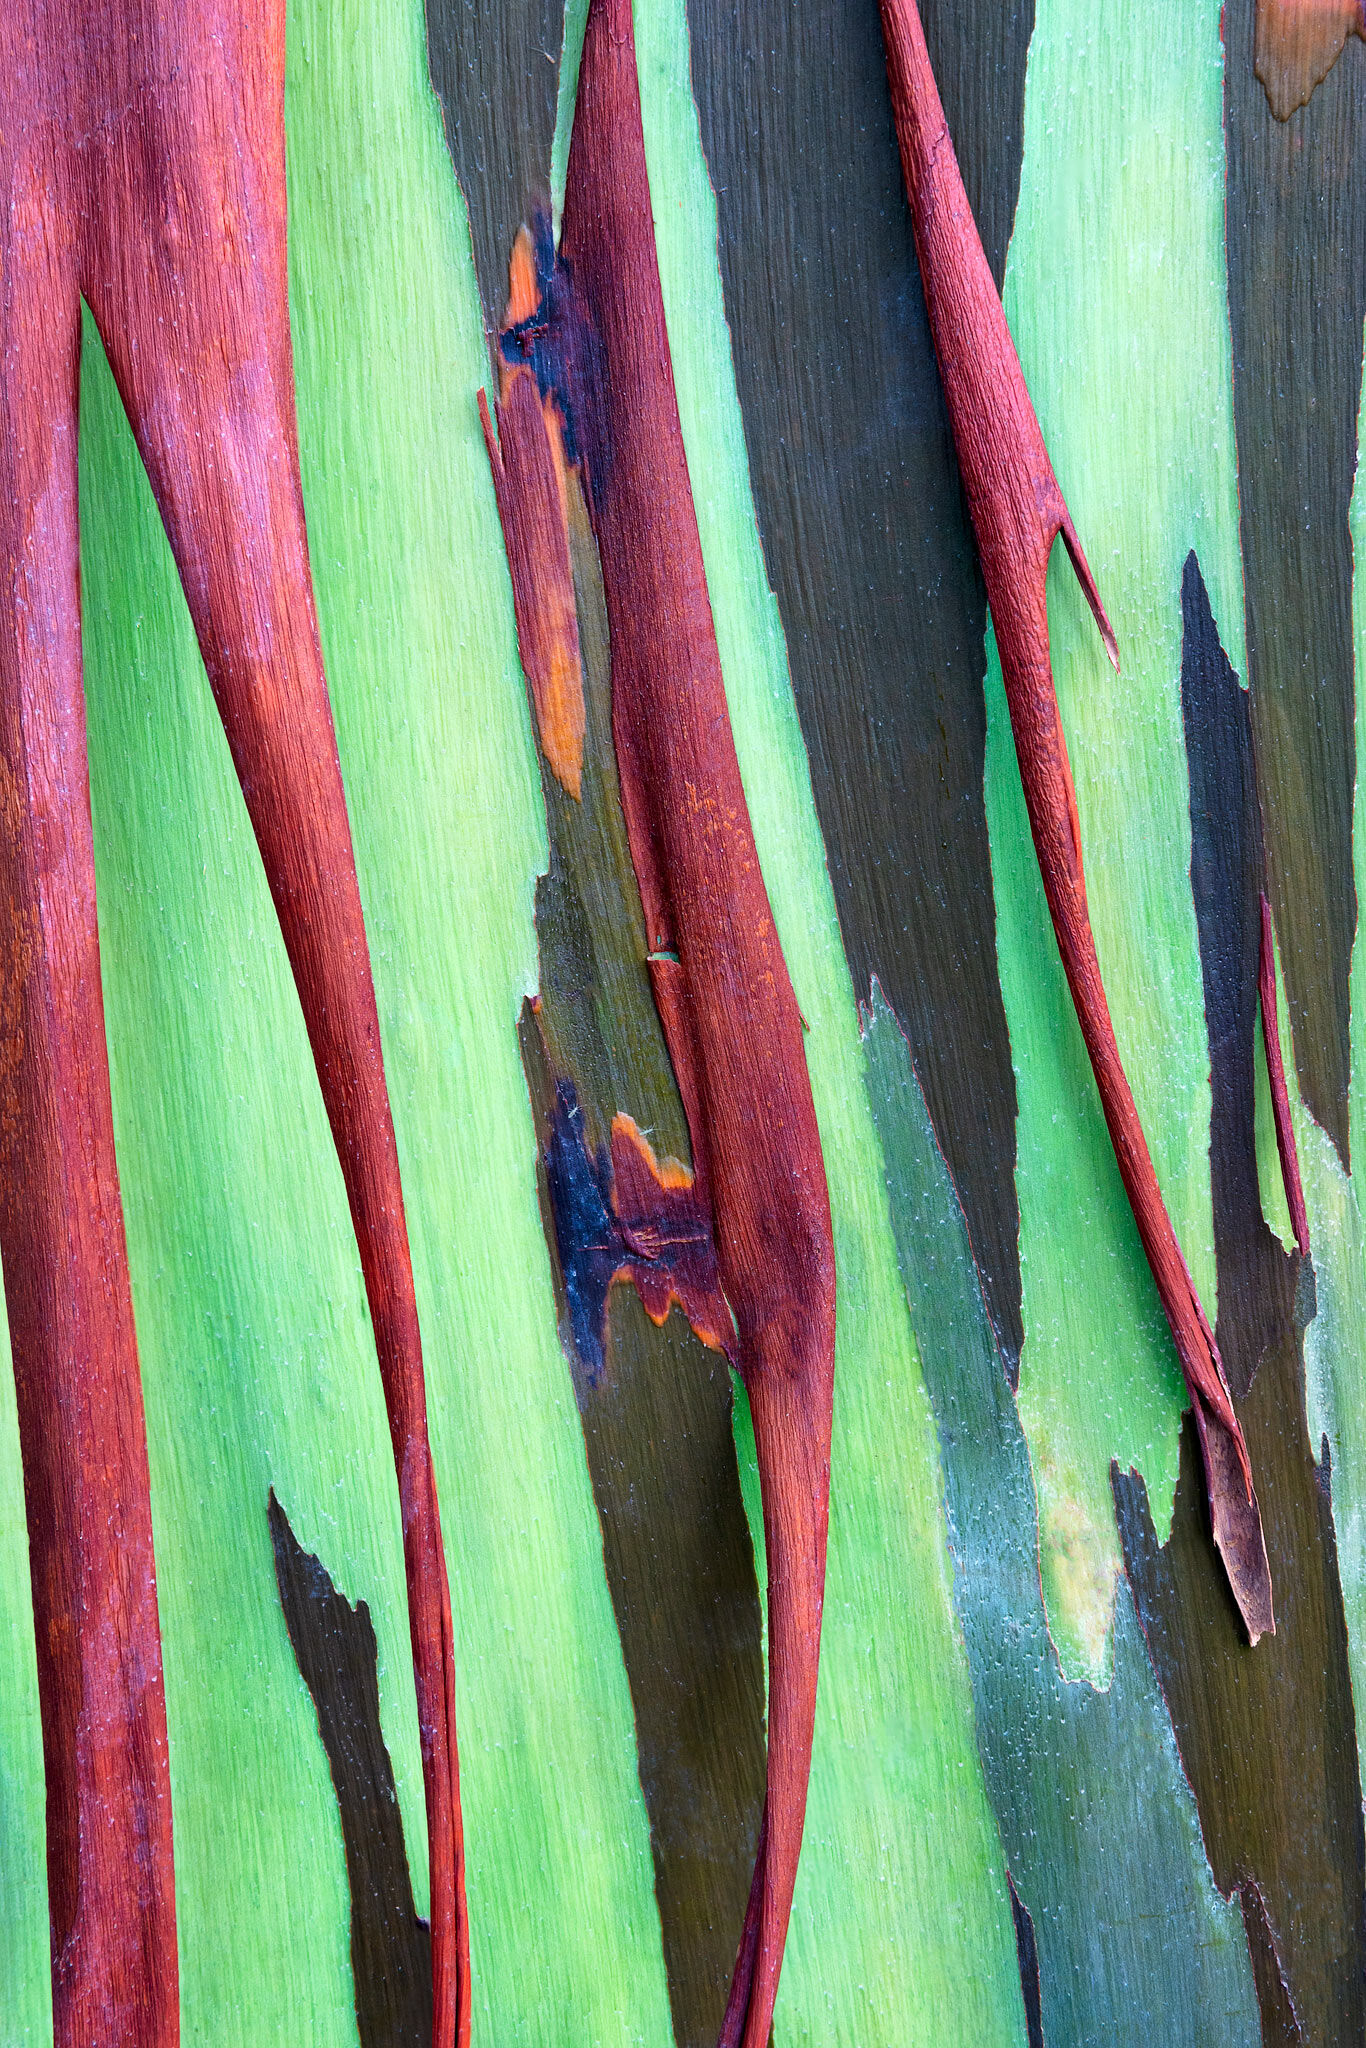 This image is part of my abstract series of rainbow eucalyptus trees. As these incredible trees grow and the old bark peels away...